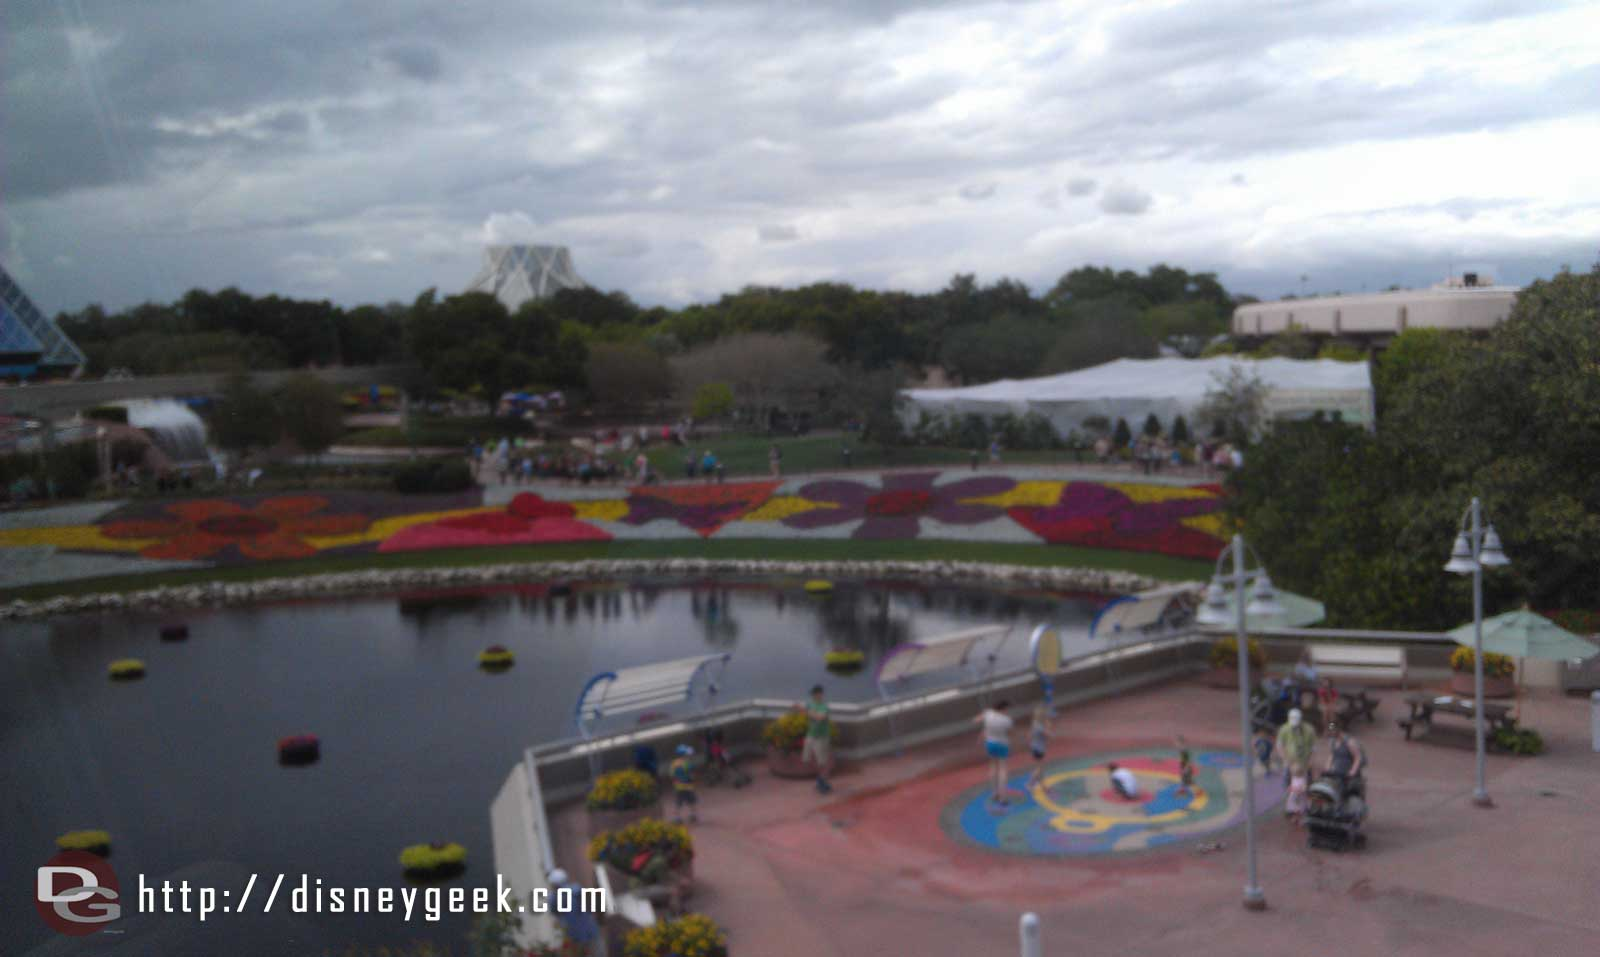 More Epcot flower beds from the Monorail